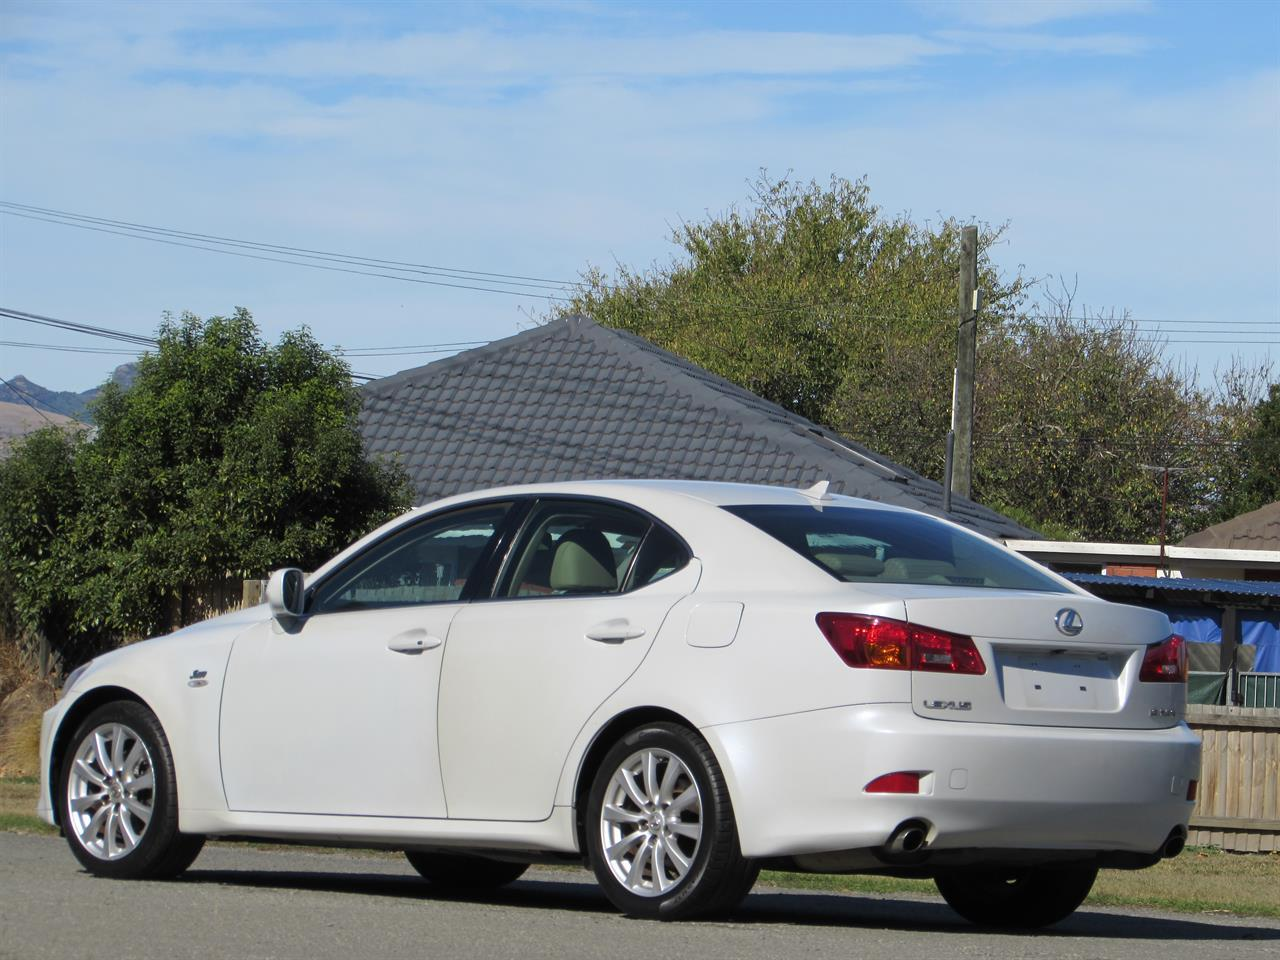 image-3, 2007 Lexus IS 250 at Christchurch